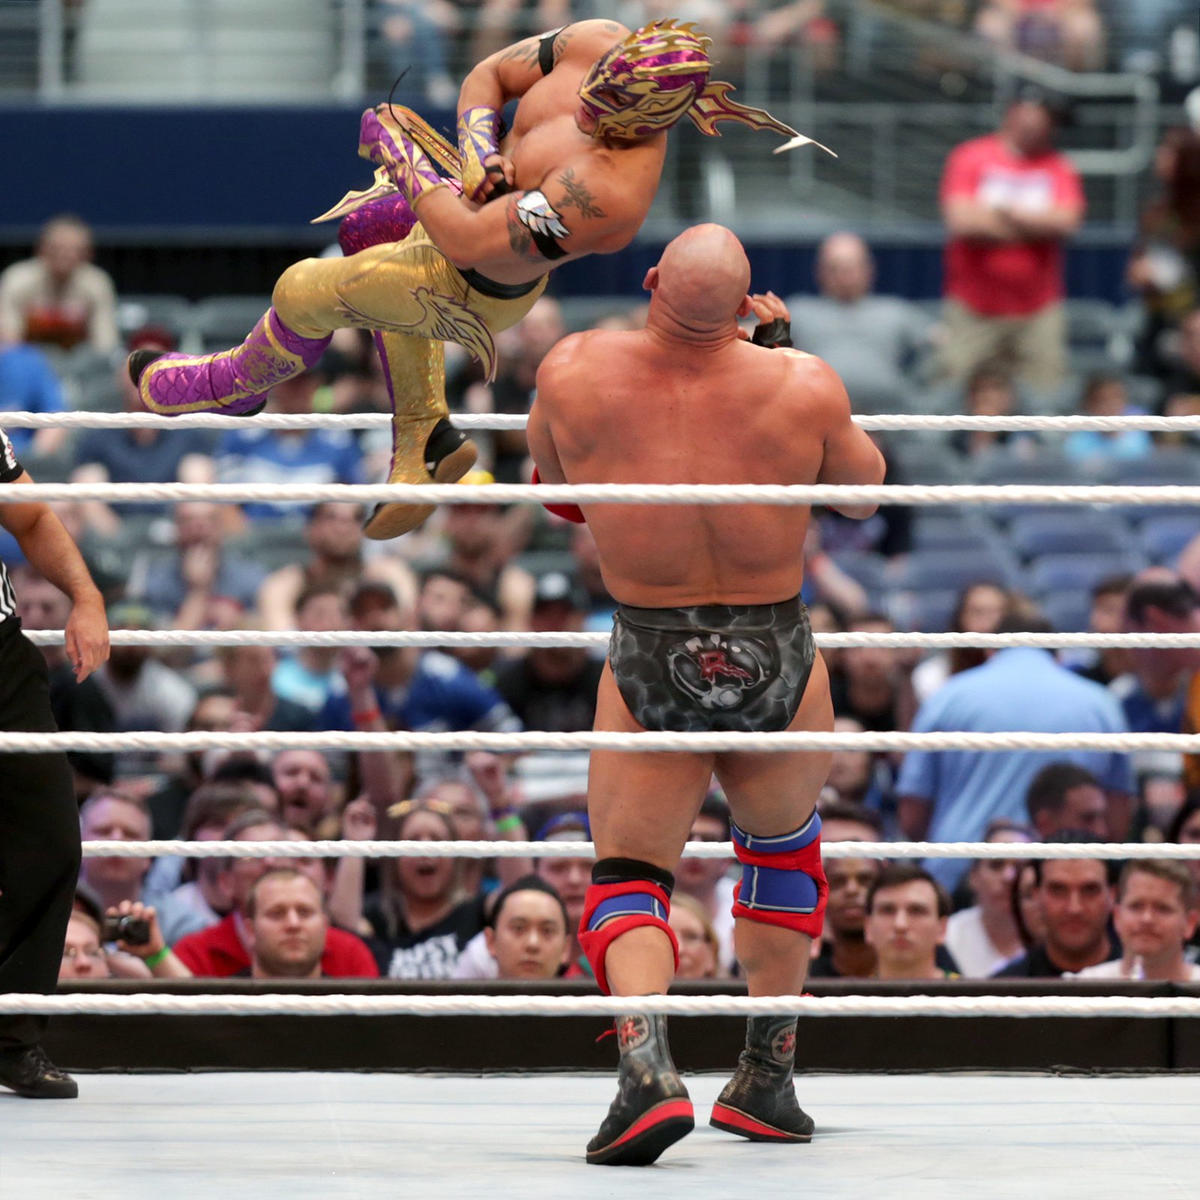 Kalisto and Ryback wrestled in front of numerous empty seats on the Wrestlemania kick-off show